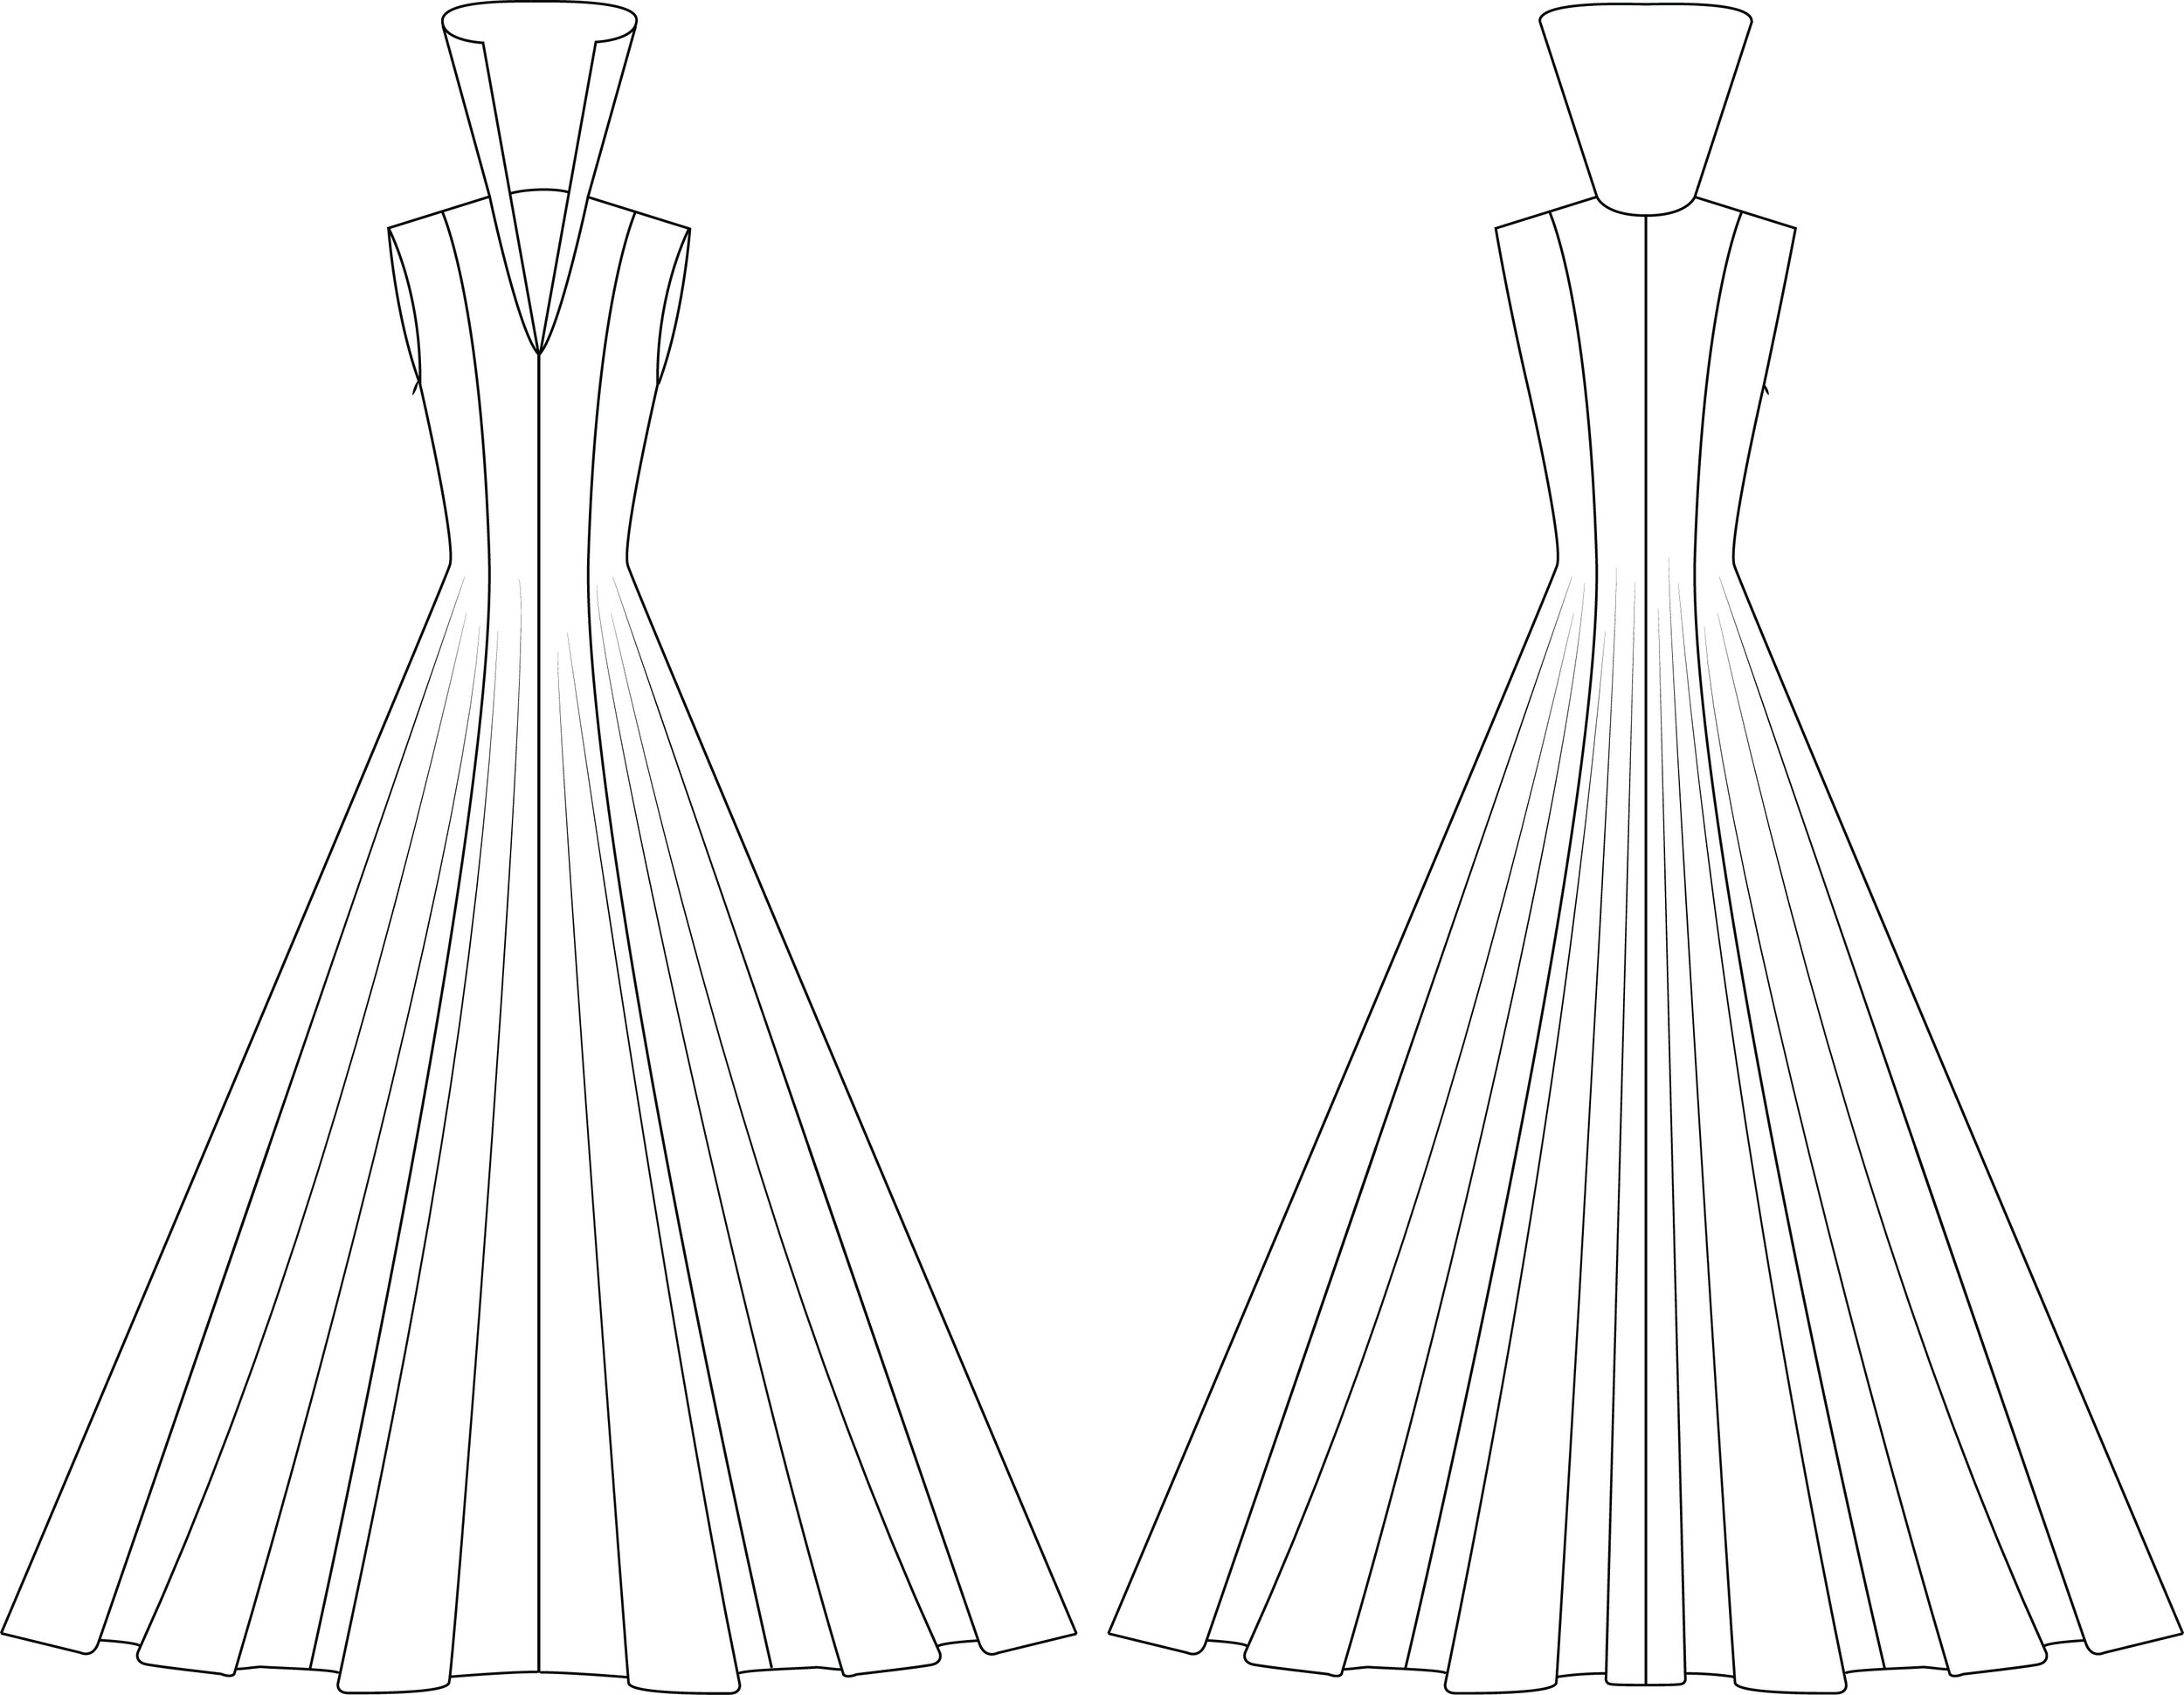 Flat Sketch of Dress Before Applique